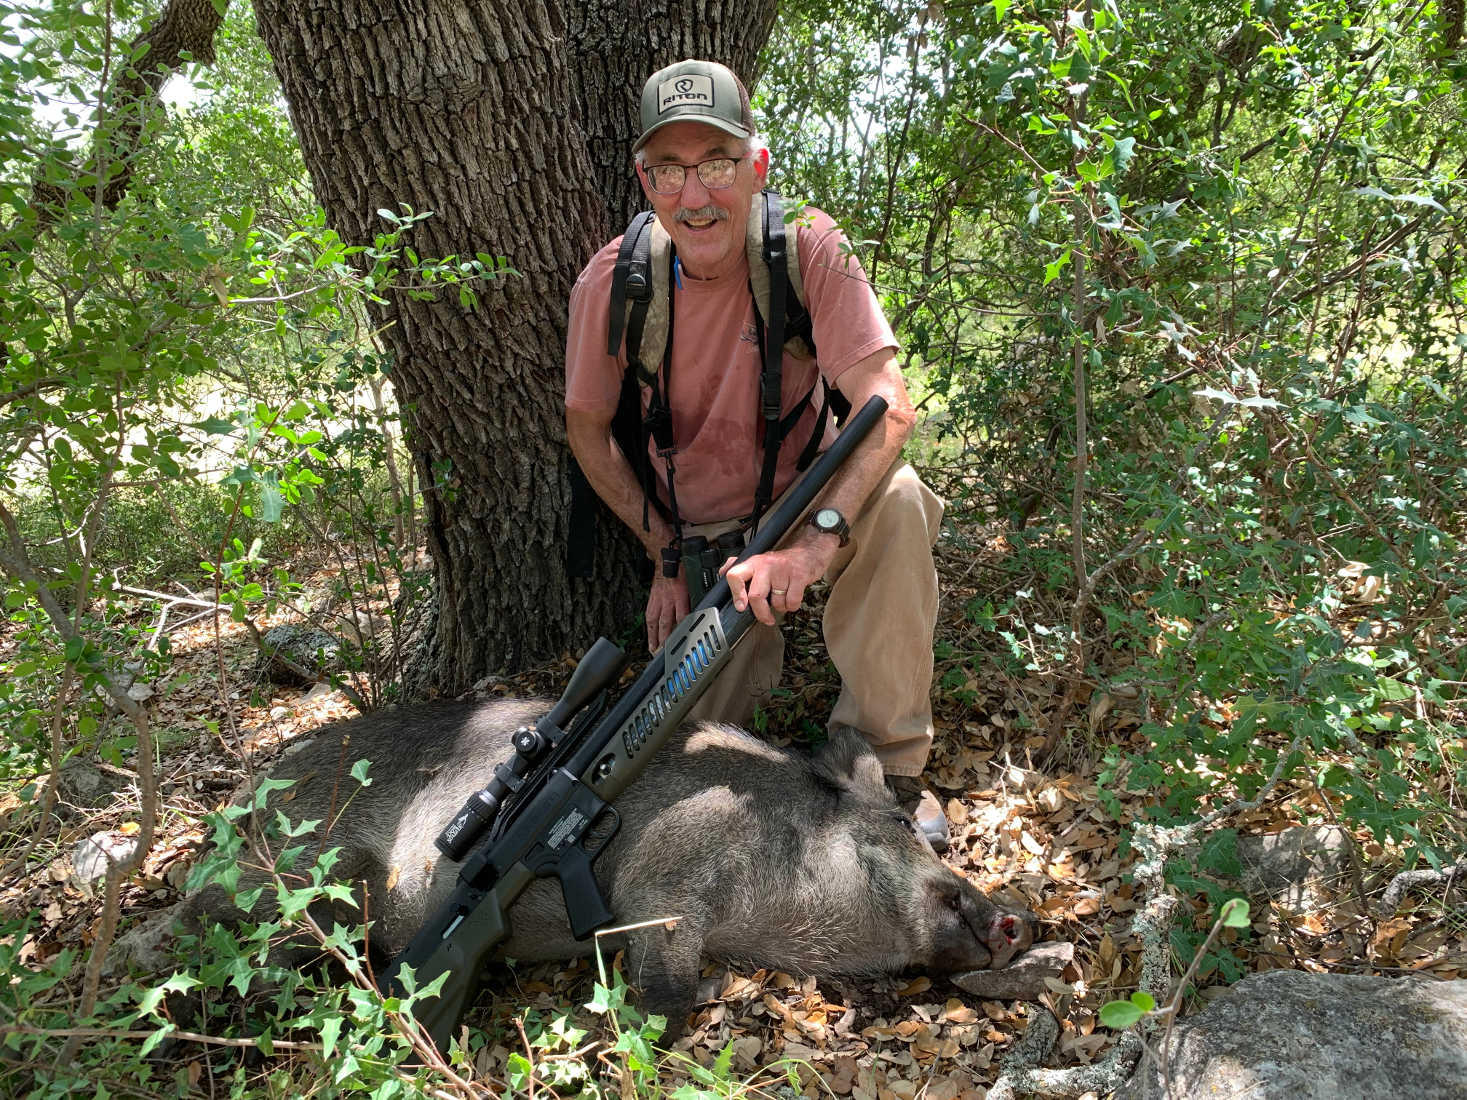 Hunting Big Game with Airguns